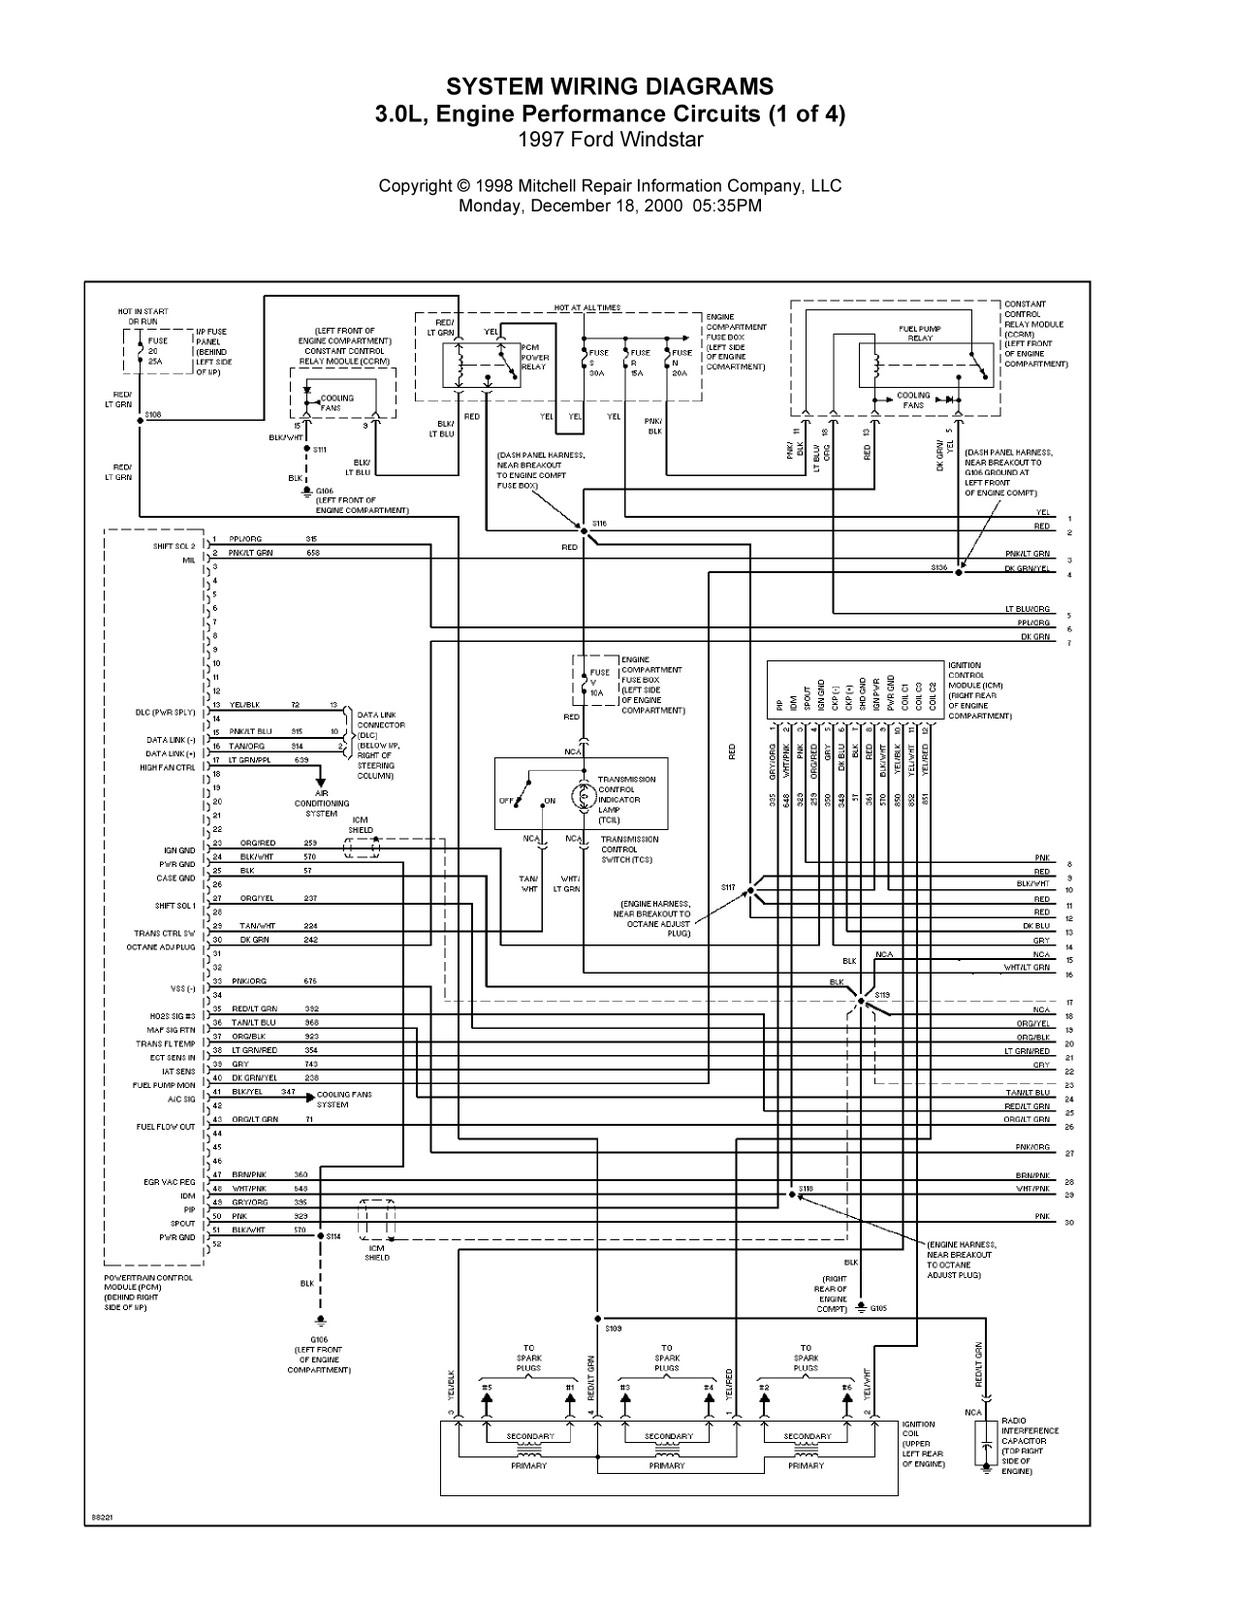 Diagram 2002 Ford Windstar Wiring Diagram Original Full Version Hd Quality Diagram Original Diagramluf Mairiecellule Fr